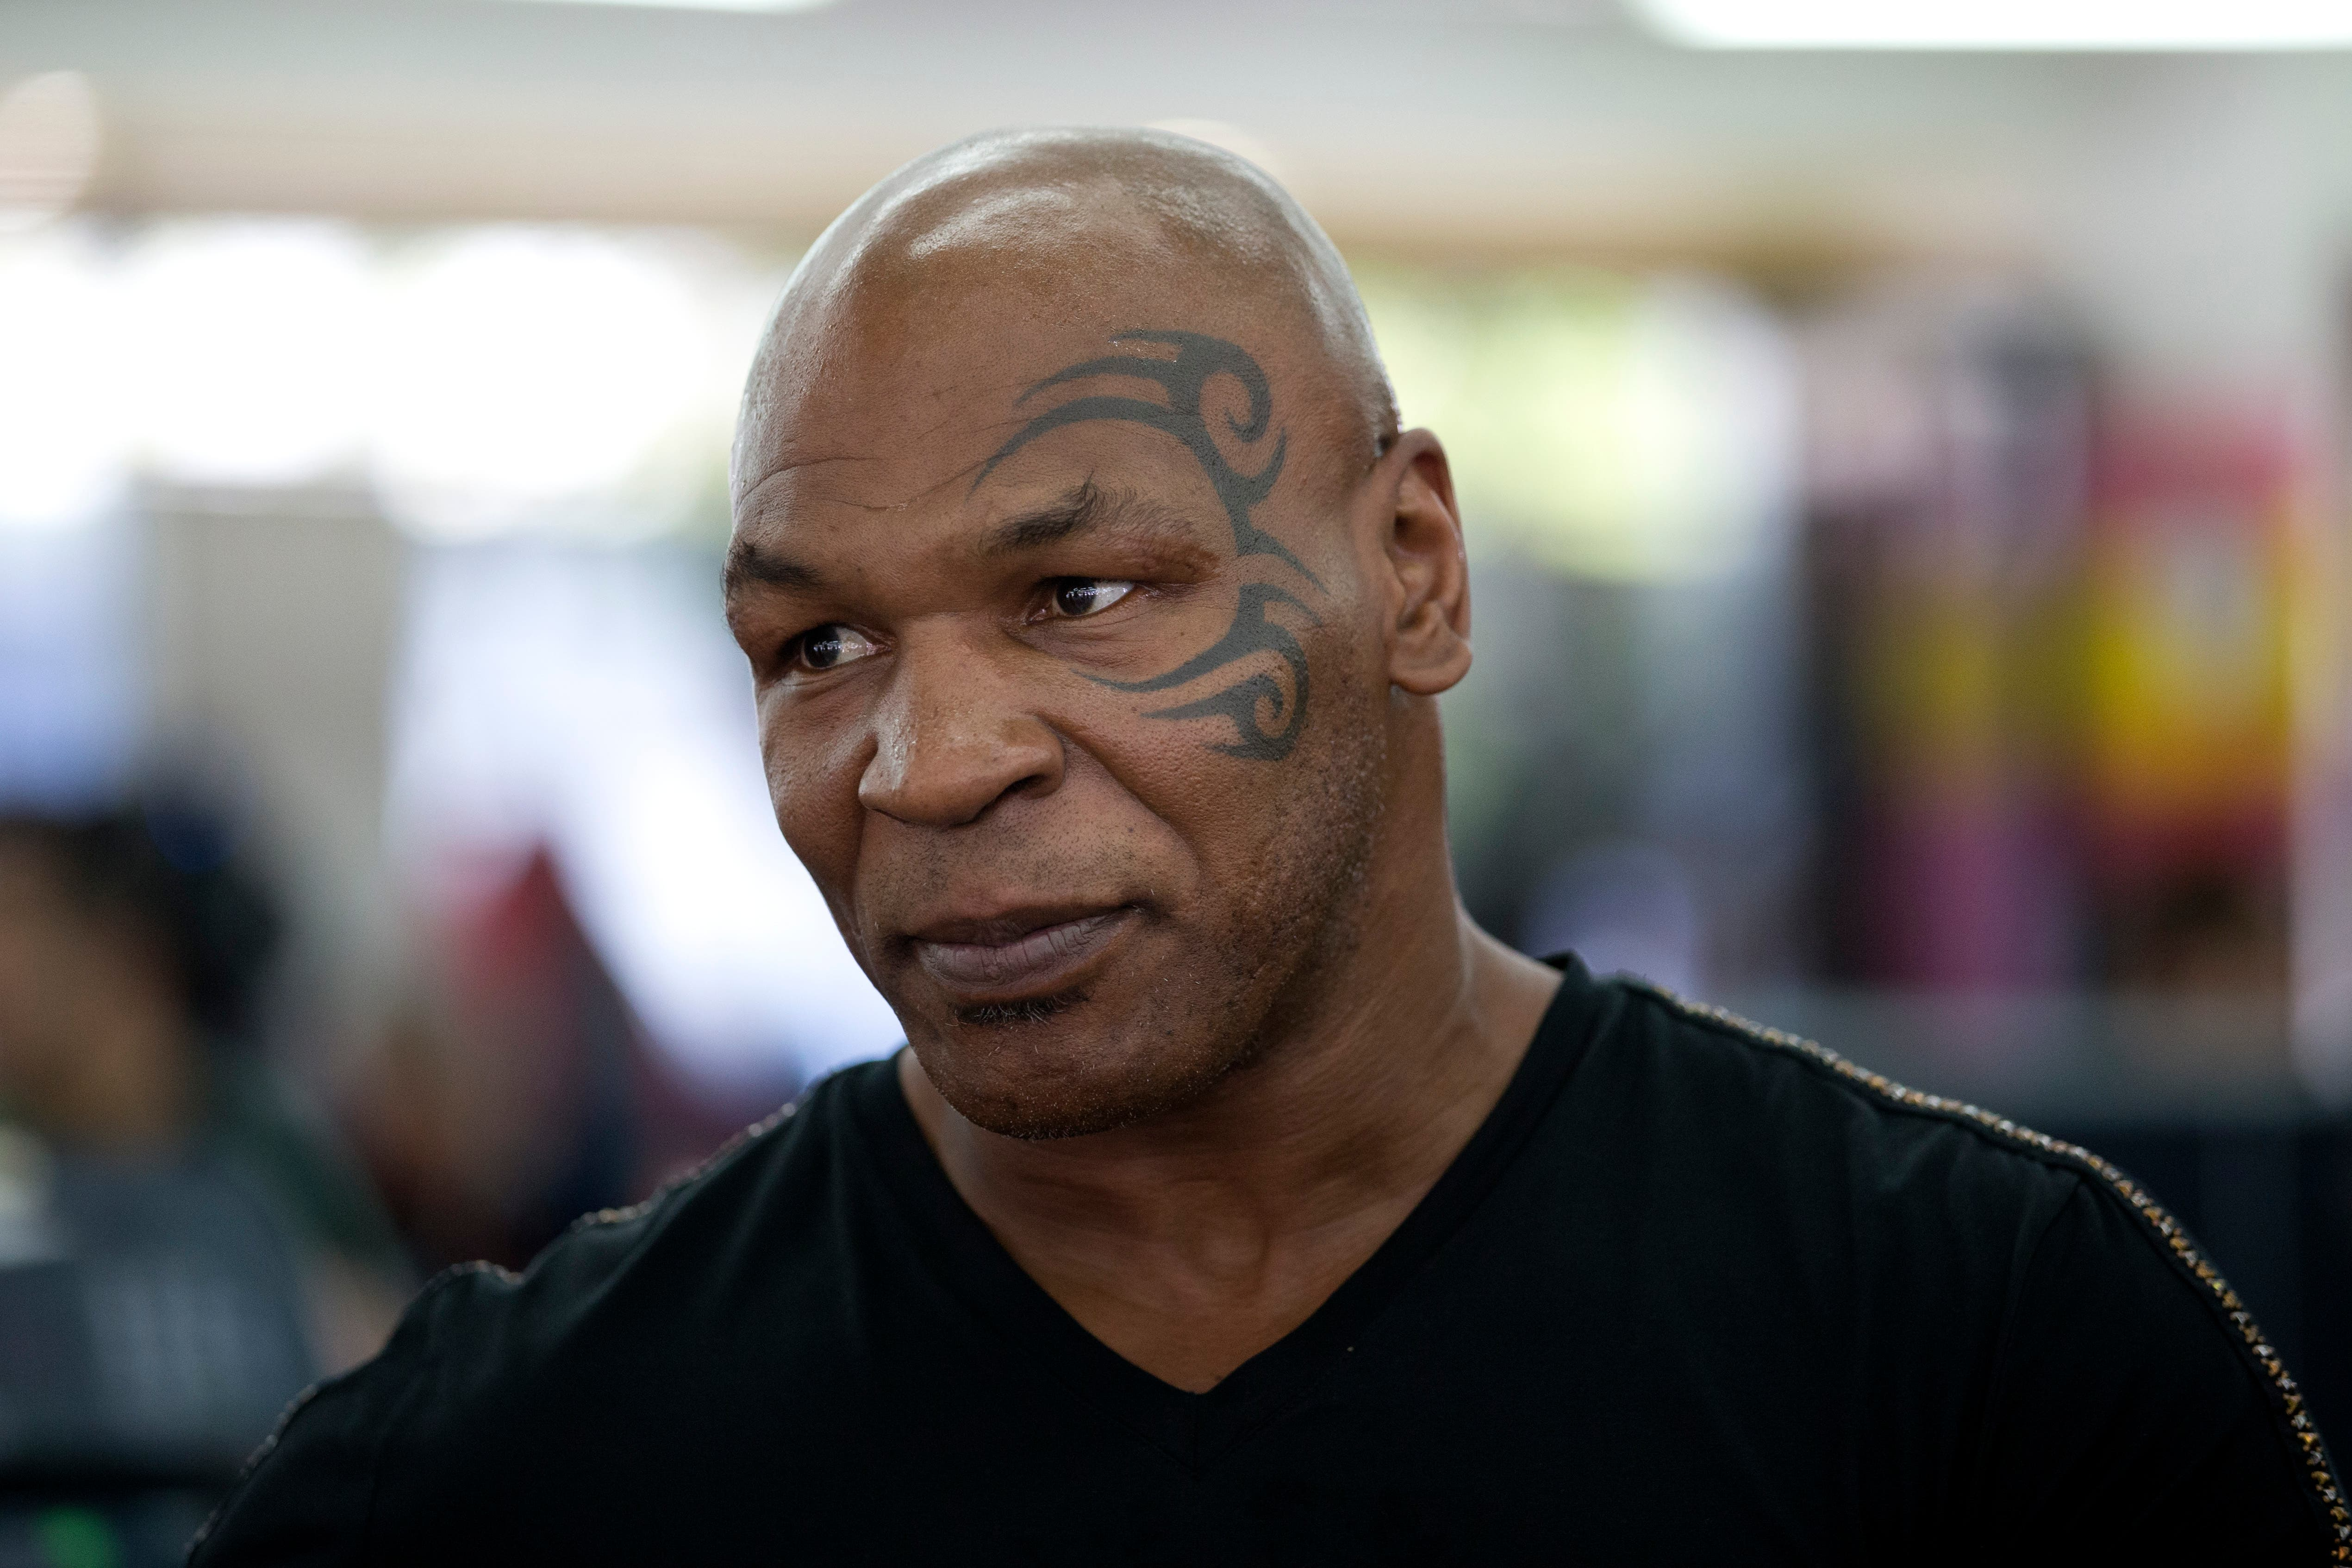 Former boxer Mike Tyson watches mixed martial arts fighter Ronda Rousey train during her workout, Wednesday, July 15, 2015, in Glendale, Calif. Rousey, the UFC bantamweight champion, will return to the octagon against Brazil's unbeaten Bethe Correia at UFC 190 in Rio de Janeiro on Aug. 1. (AP Photo/Jae C. Hong)